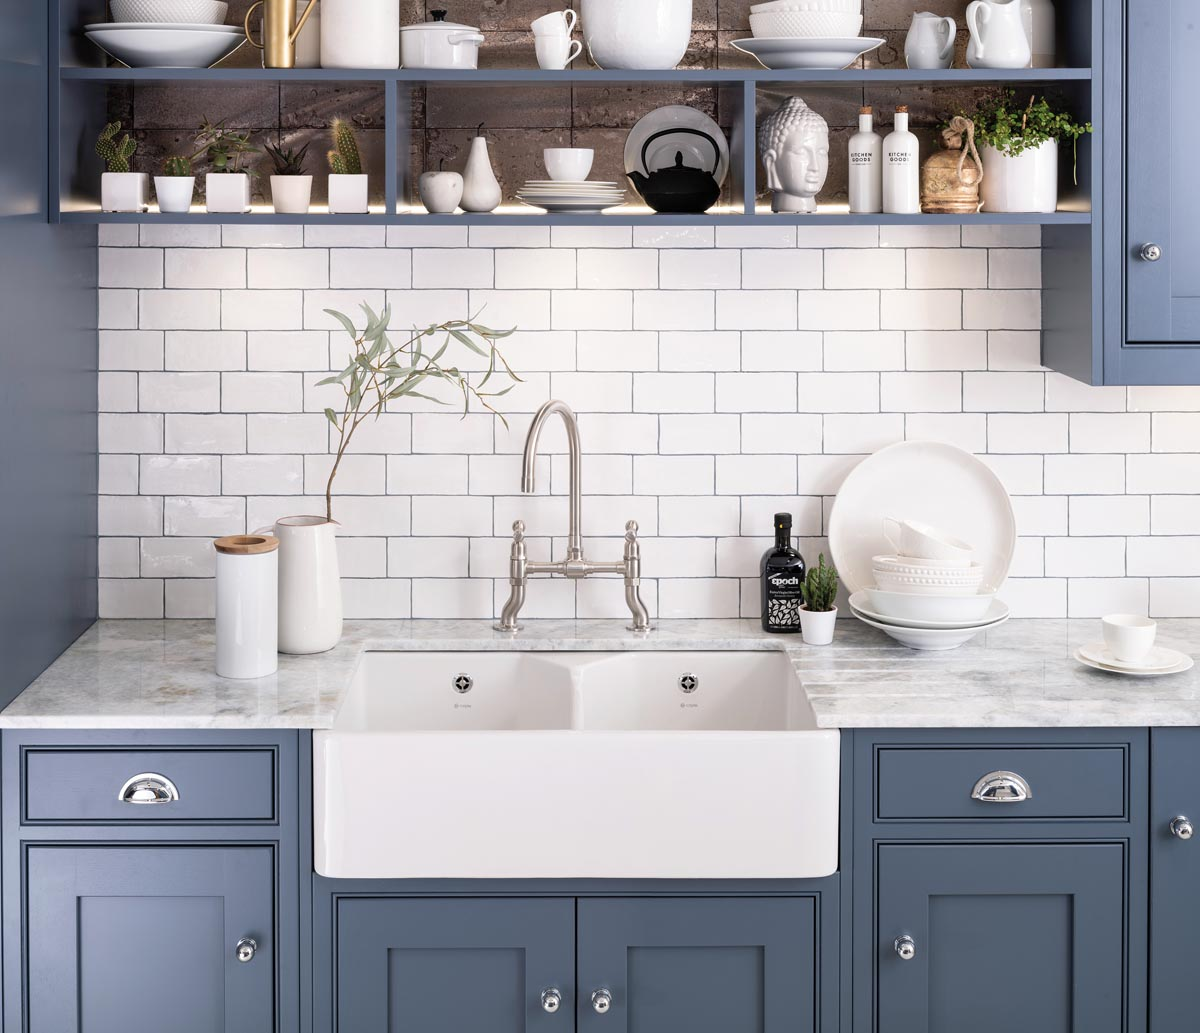 Getting to Know Kitchen Sink Types for Your Kitchen